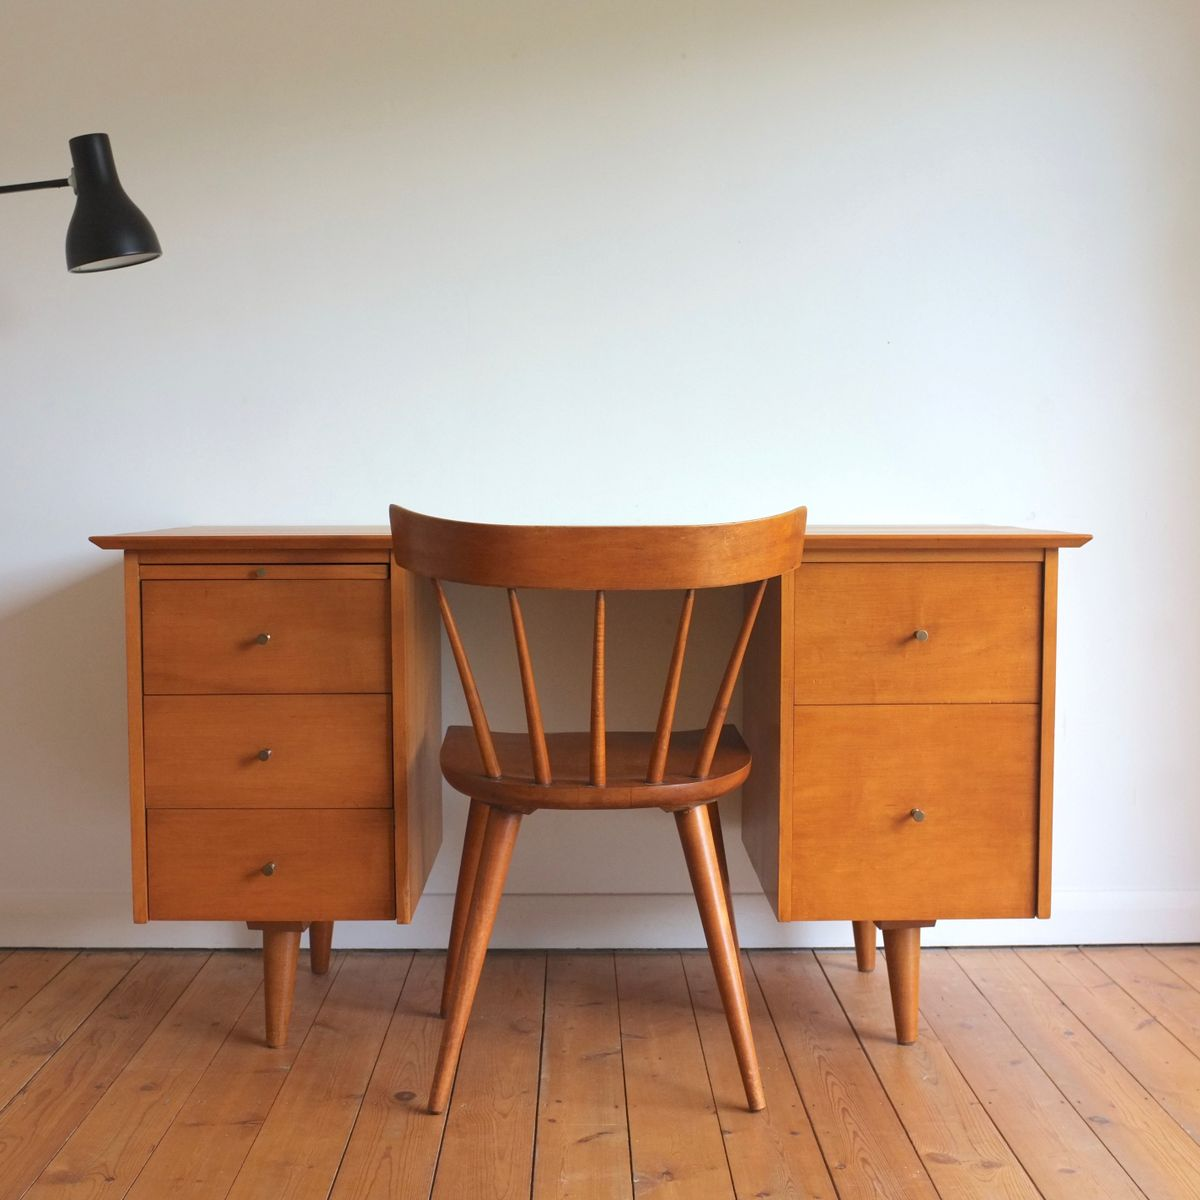 Model 1561 Maple Desk By Paul McCobb For Winchendon Furniture, 1950s